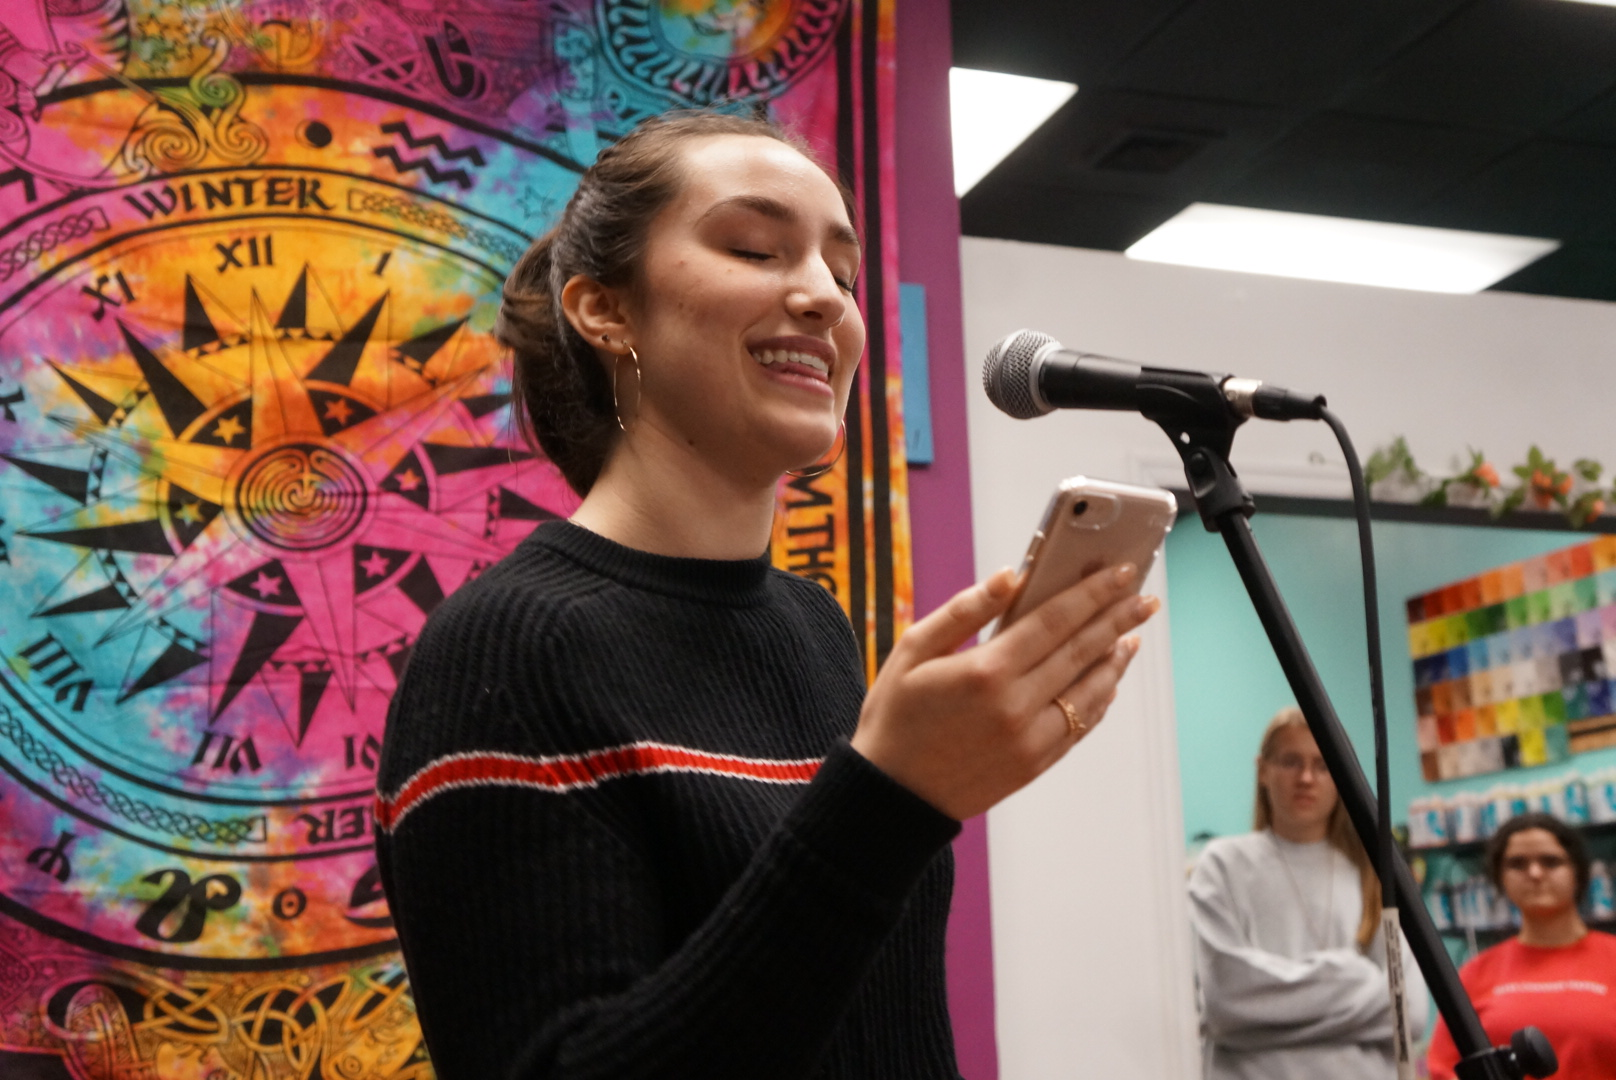 Madison Crane performed spoken word and the event